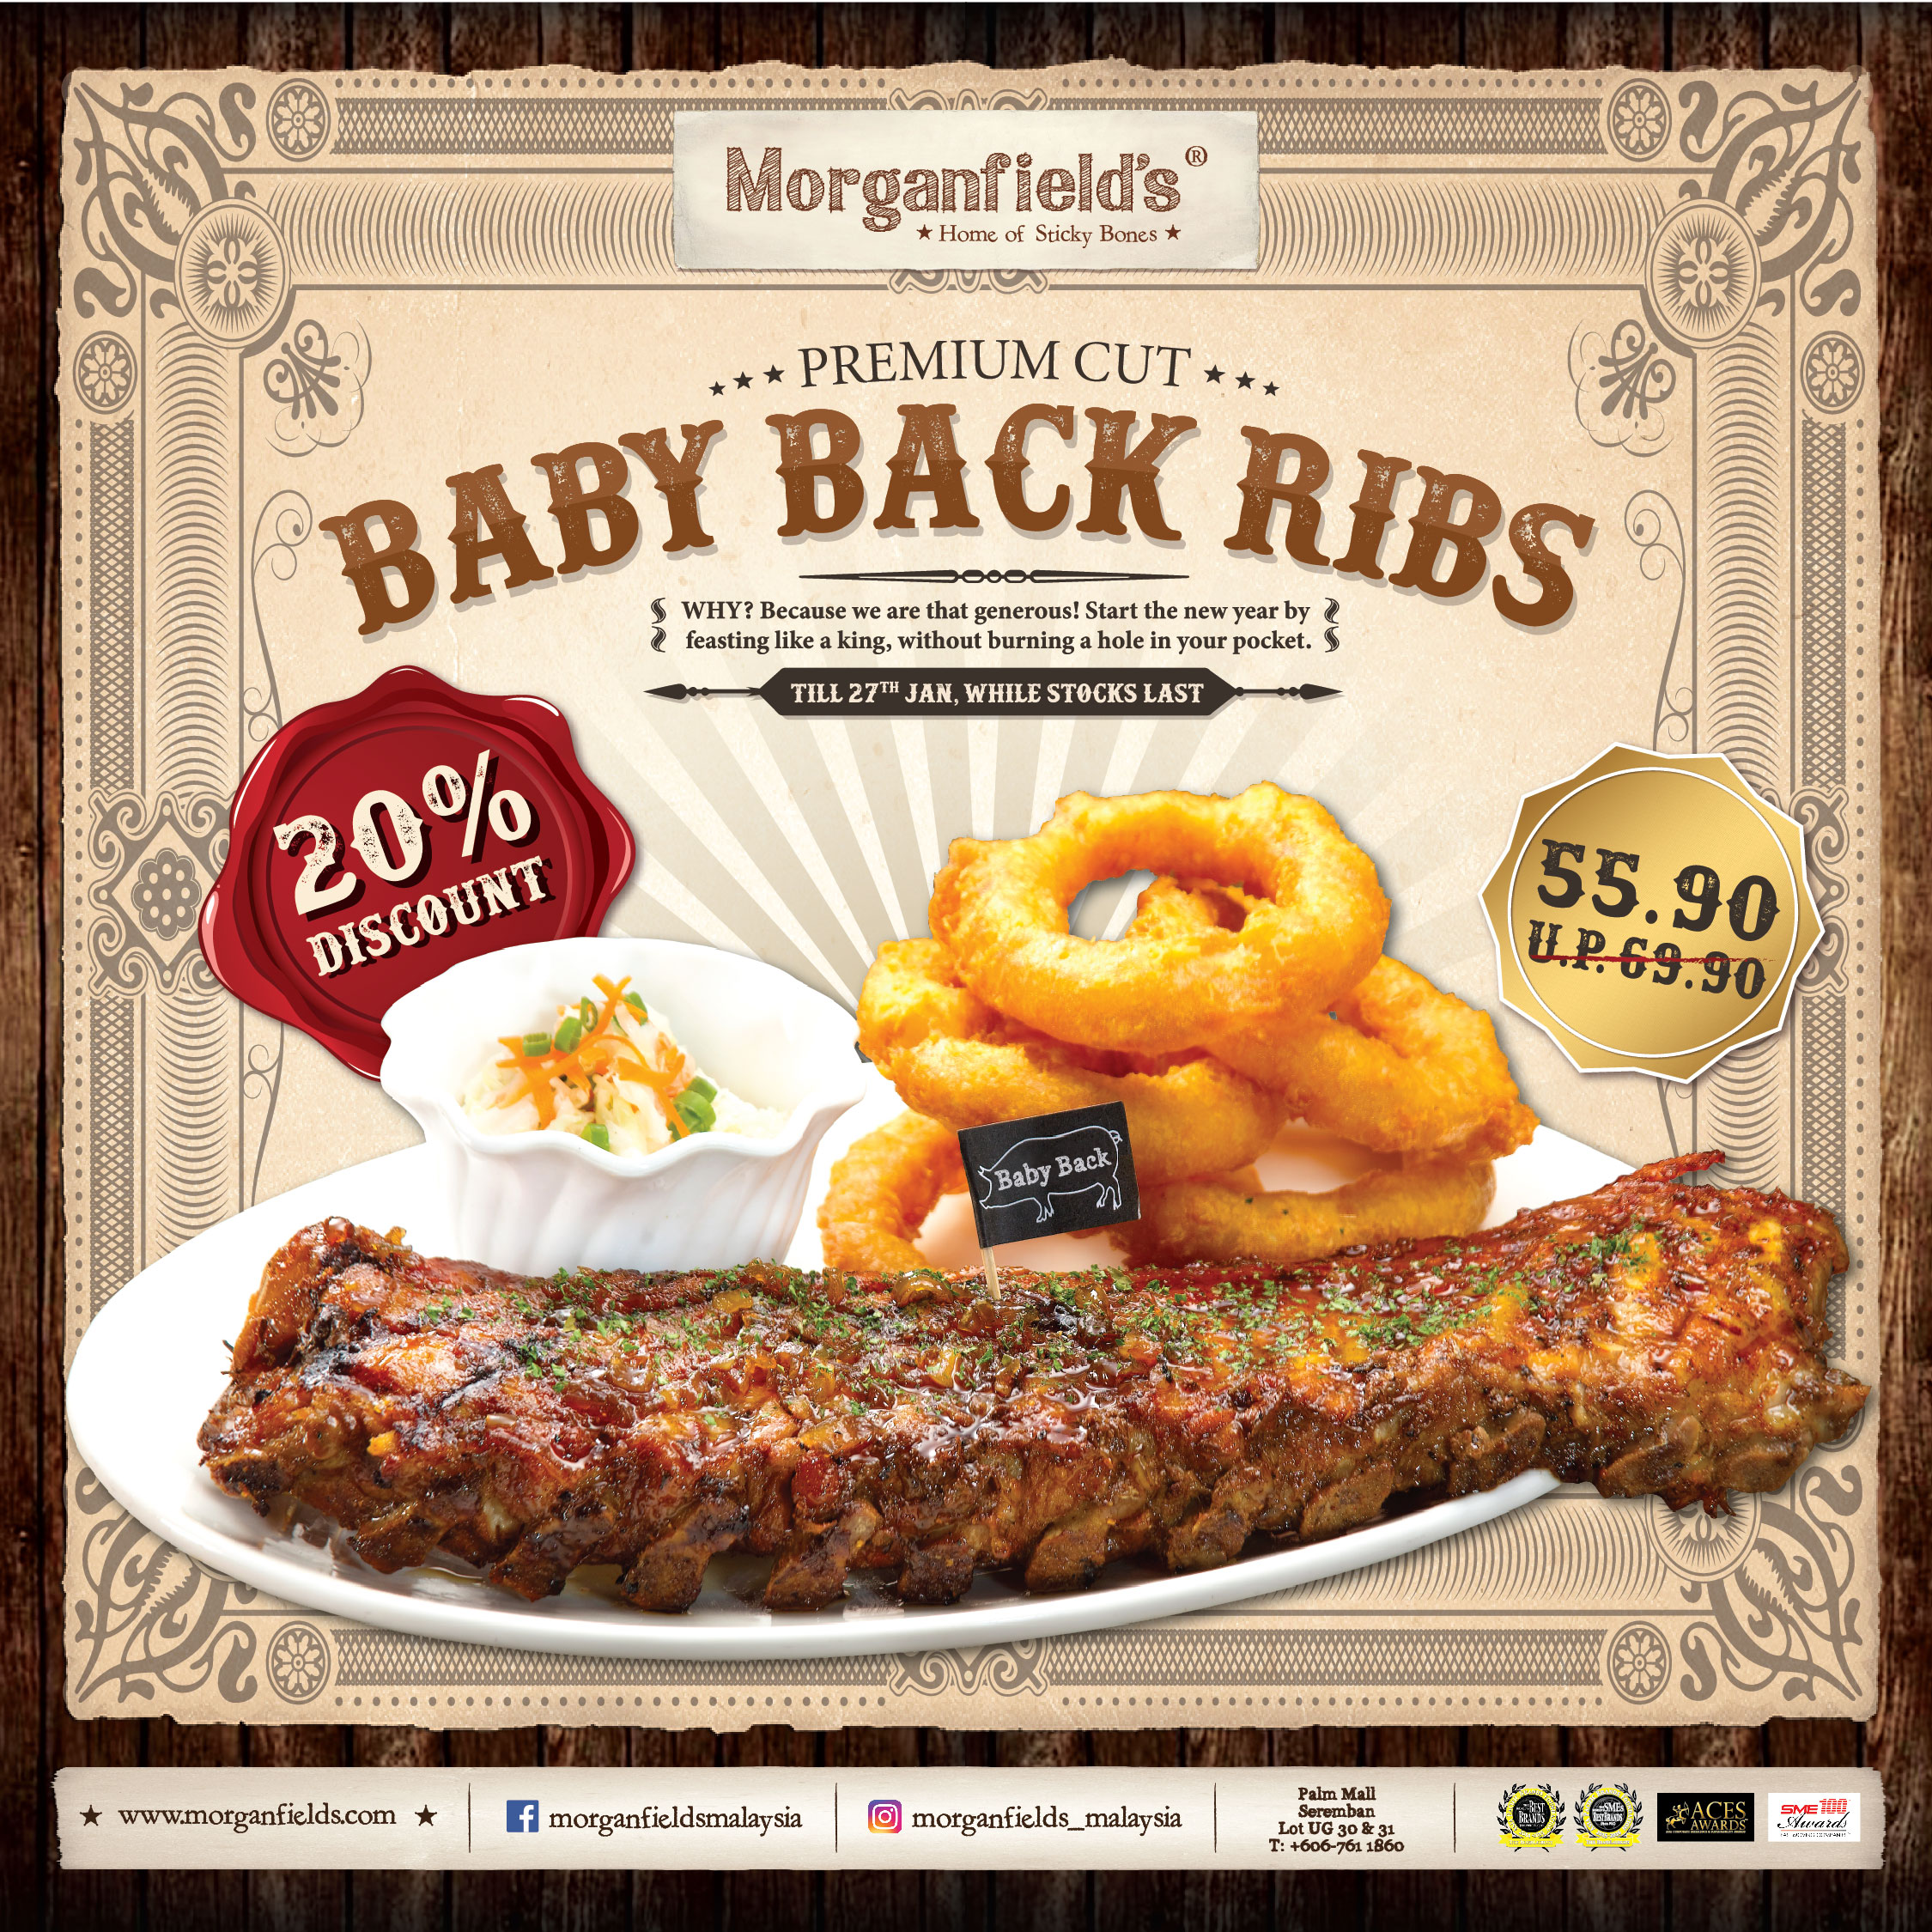 Morganfield's 20% OFF Baby Back Ribs